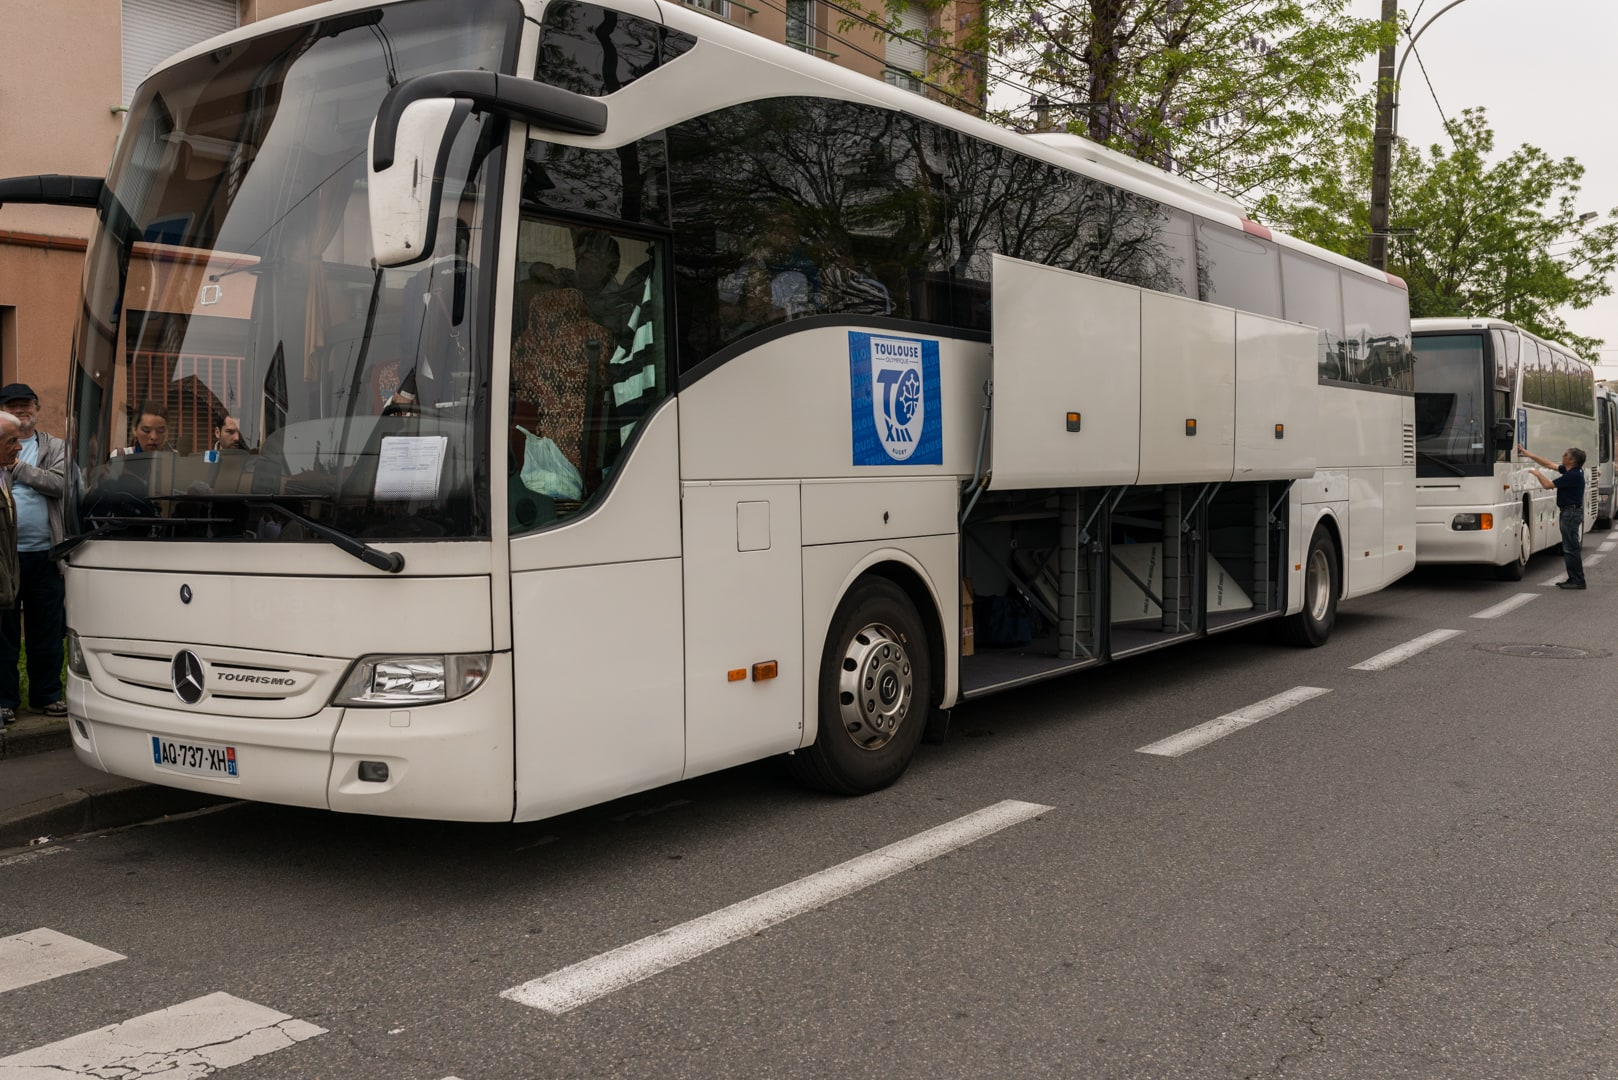 Photo du bus de supporter du TOXIII avant la finale de la coupe de France .